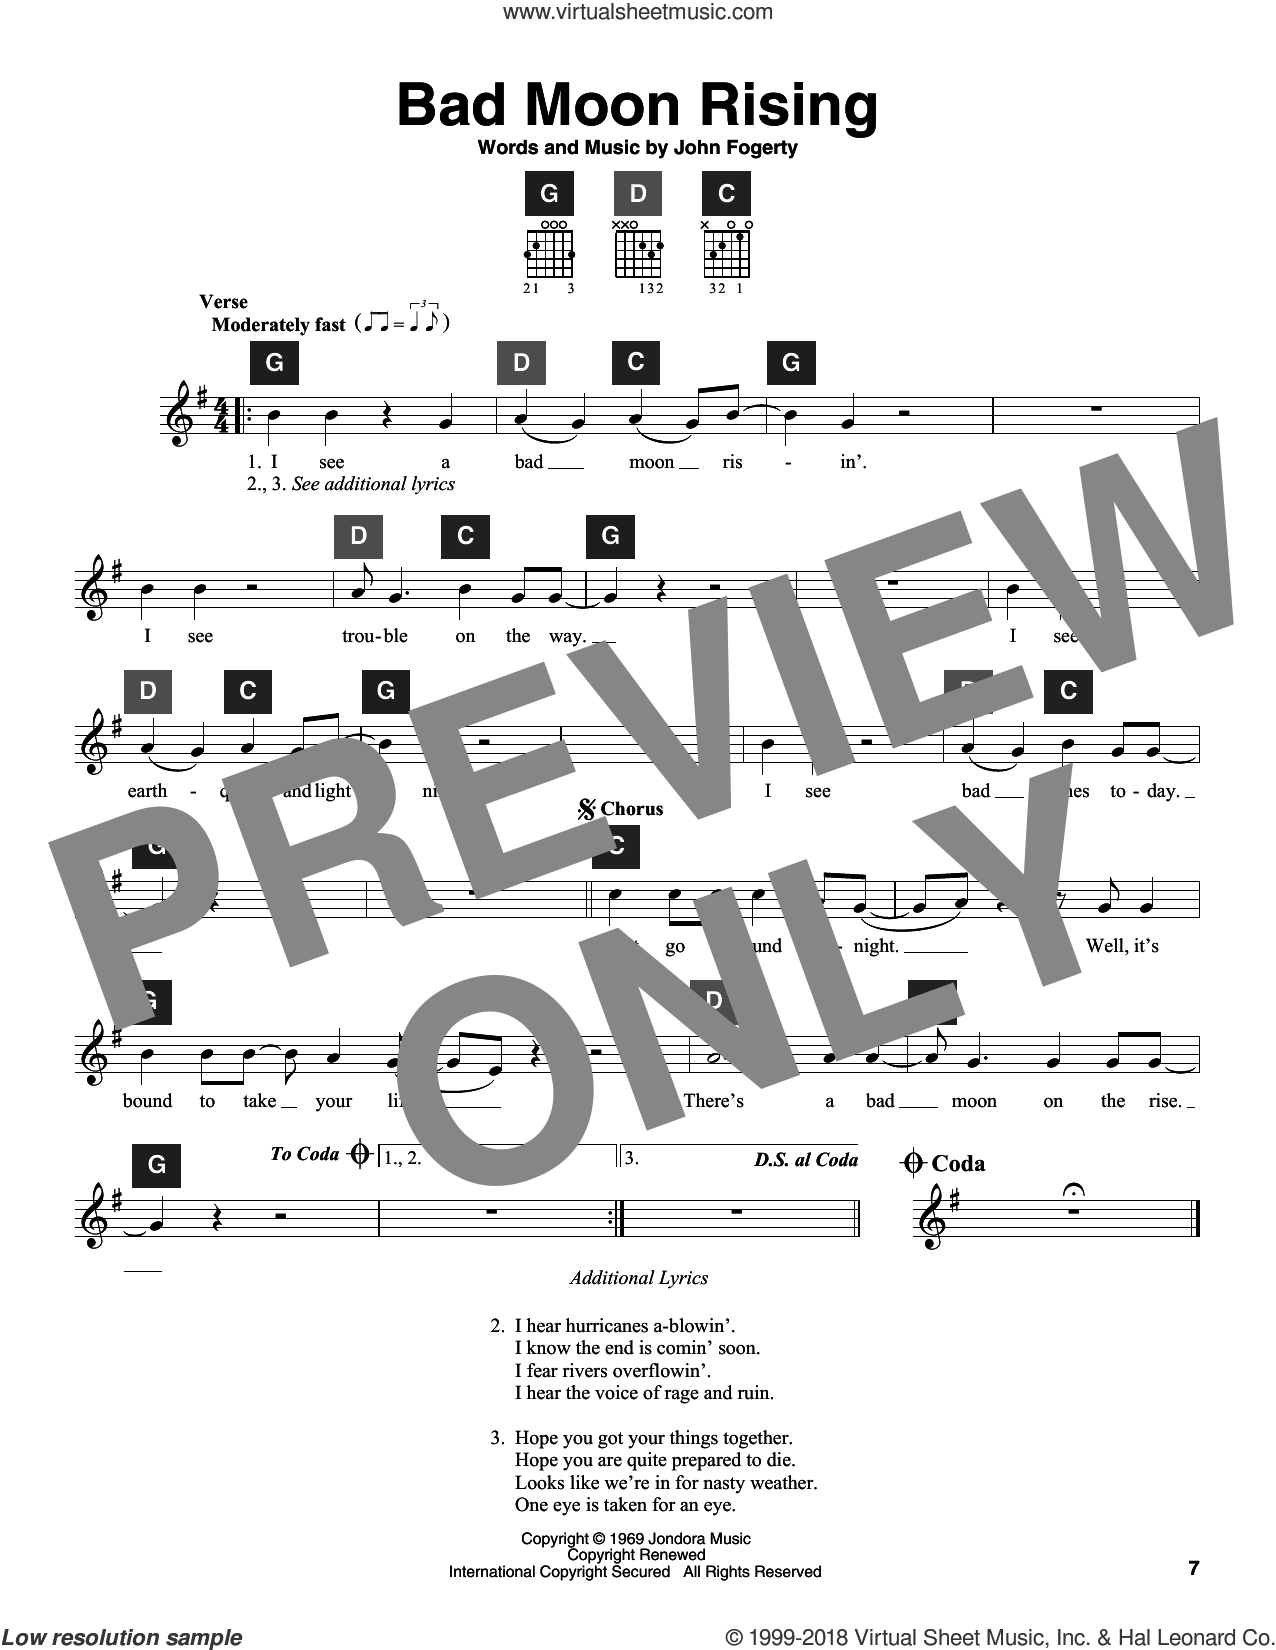 Bad Moon Rising sheet music for guitar solo (ChordBuddy system) by Creedence Clearwater Revival, Travis Perry and John Fogerty, intermediate guitar (ChordBuddy system). Score Image Preview.